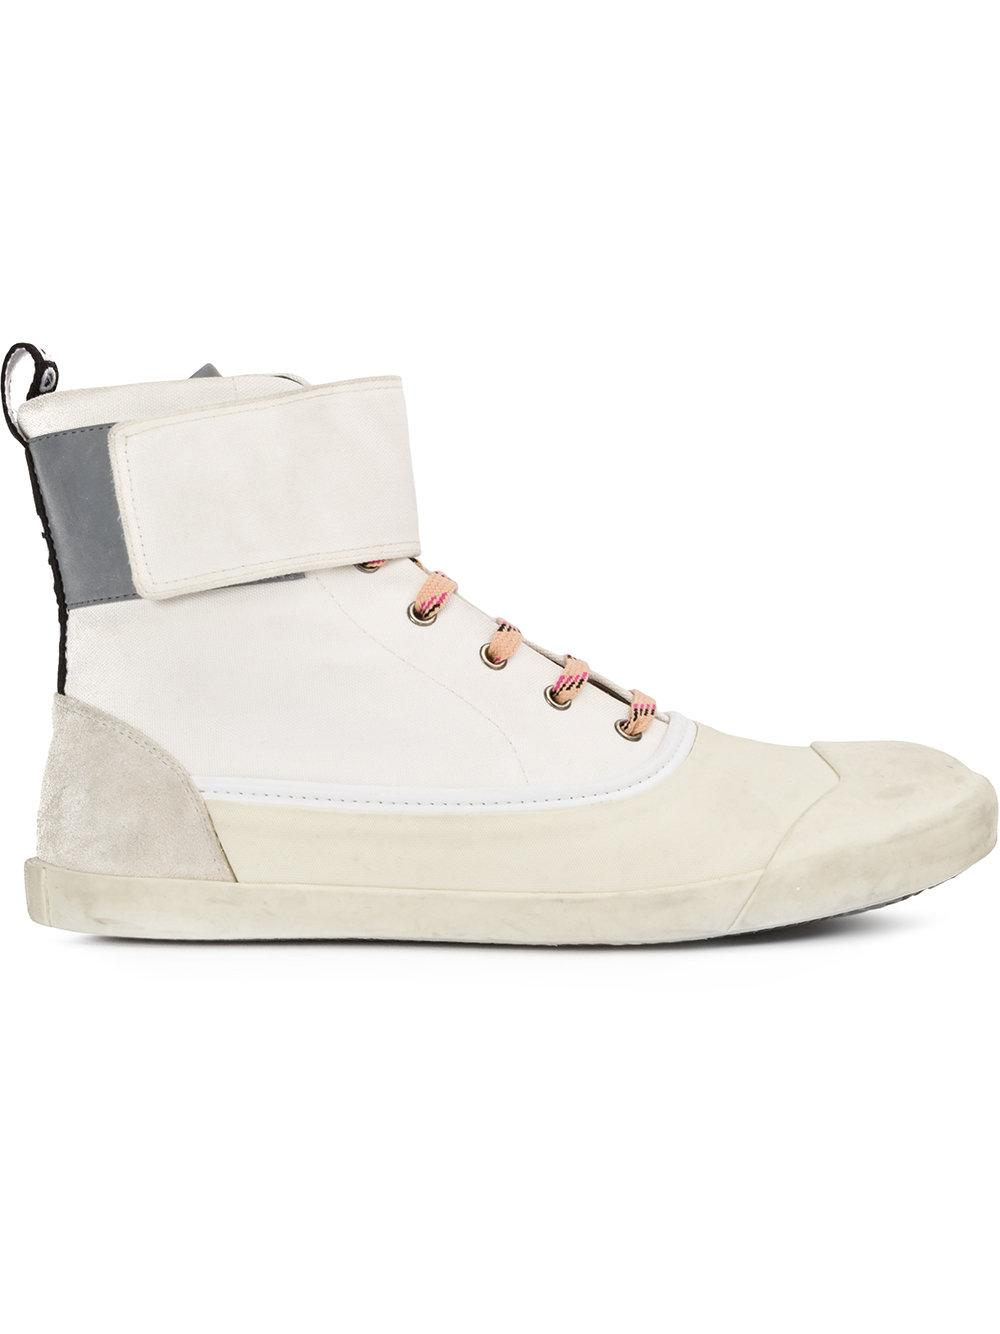 lanvin strapped hi top canvas sneakers in white for lyst